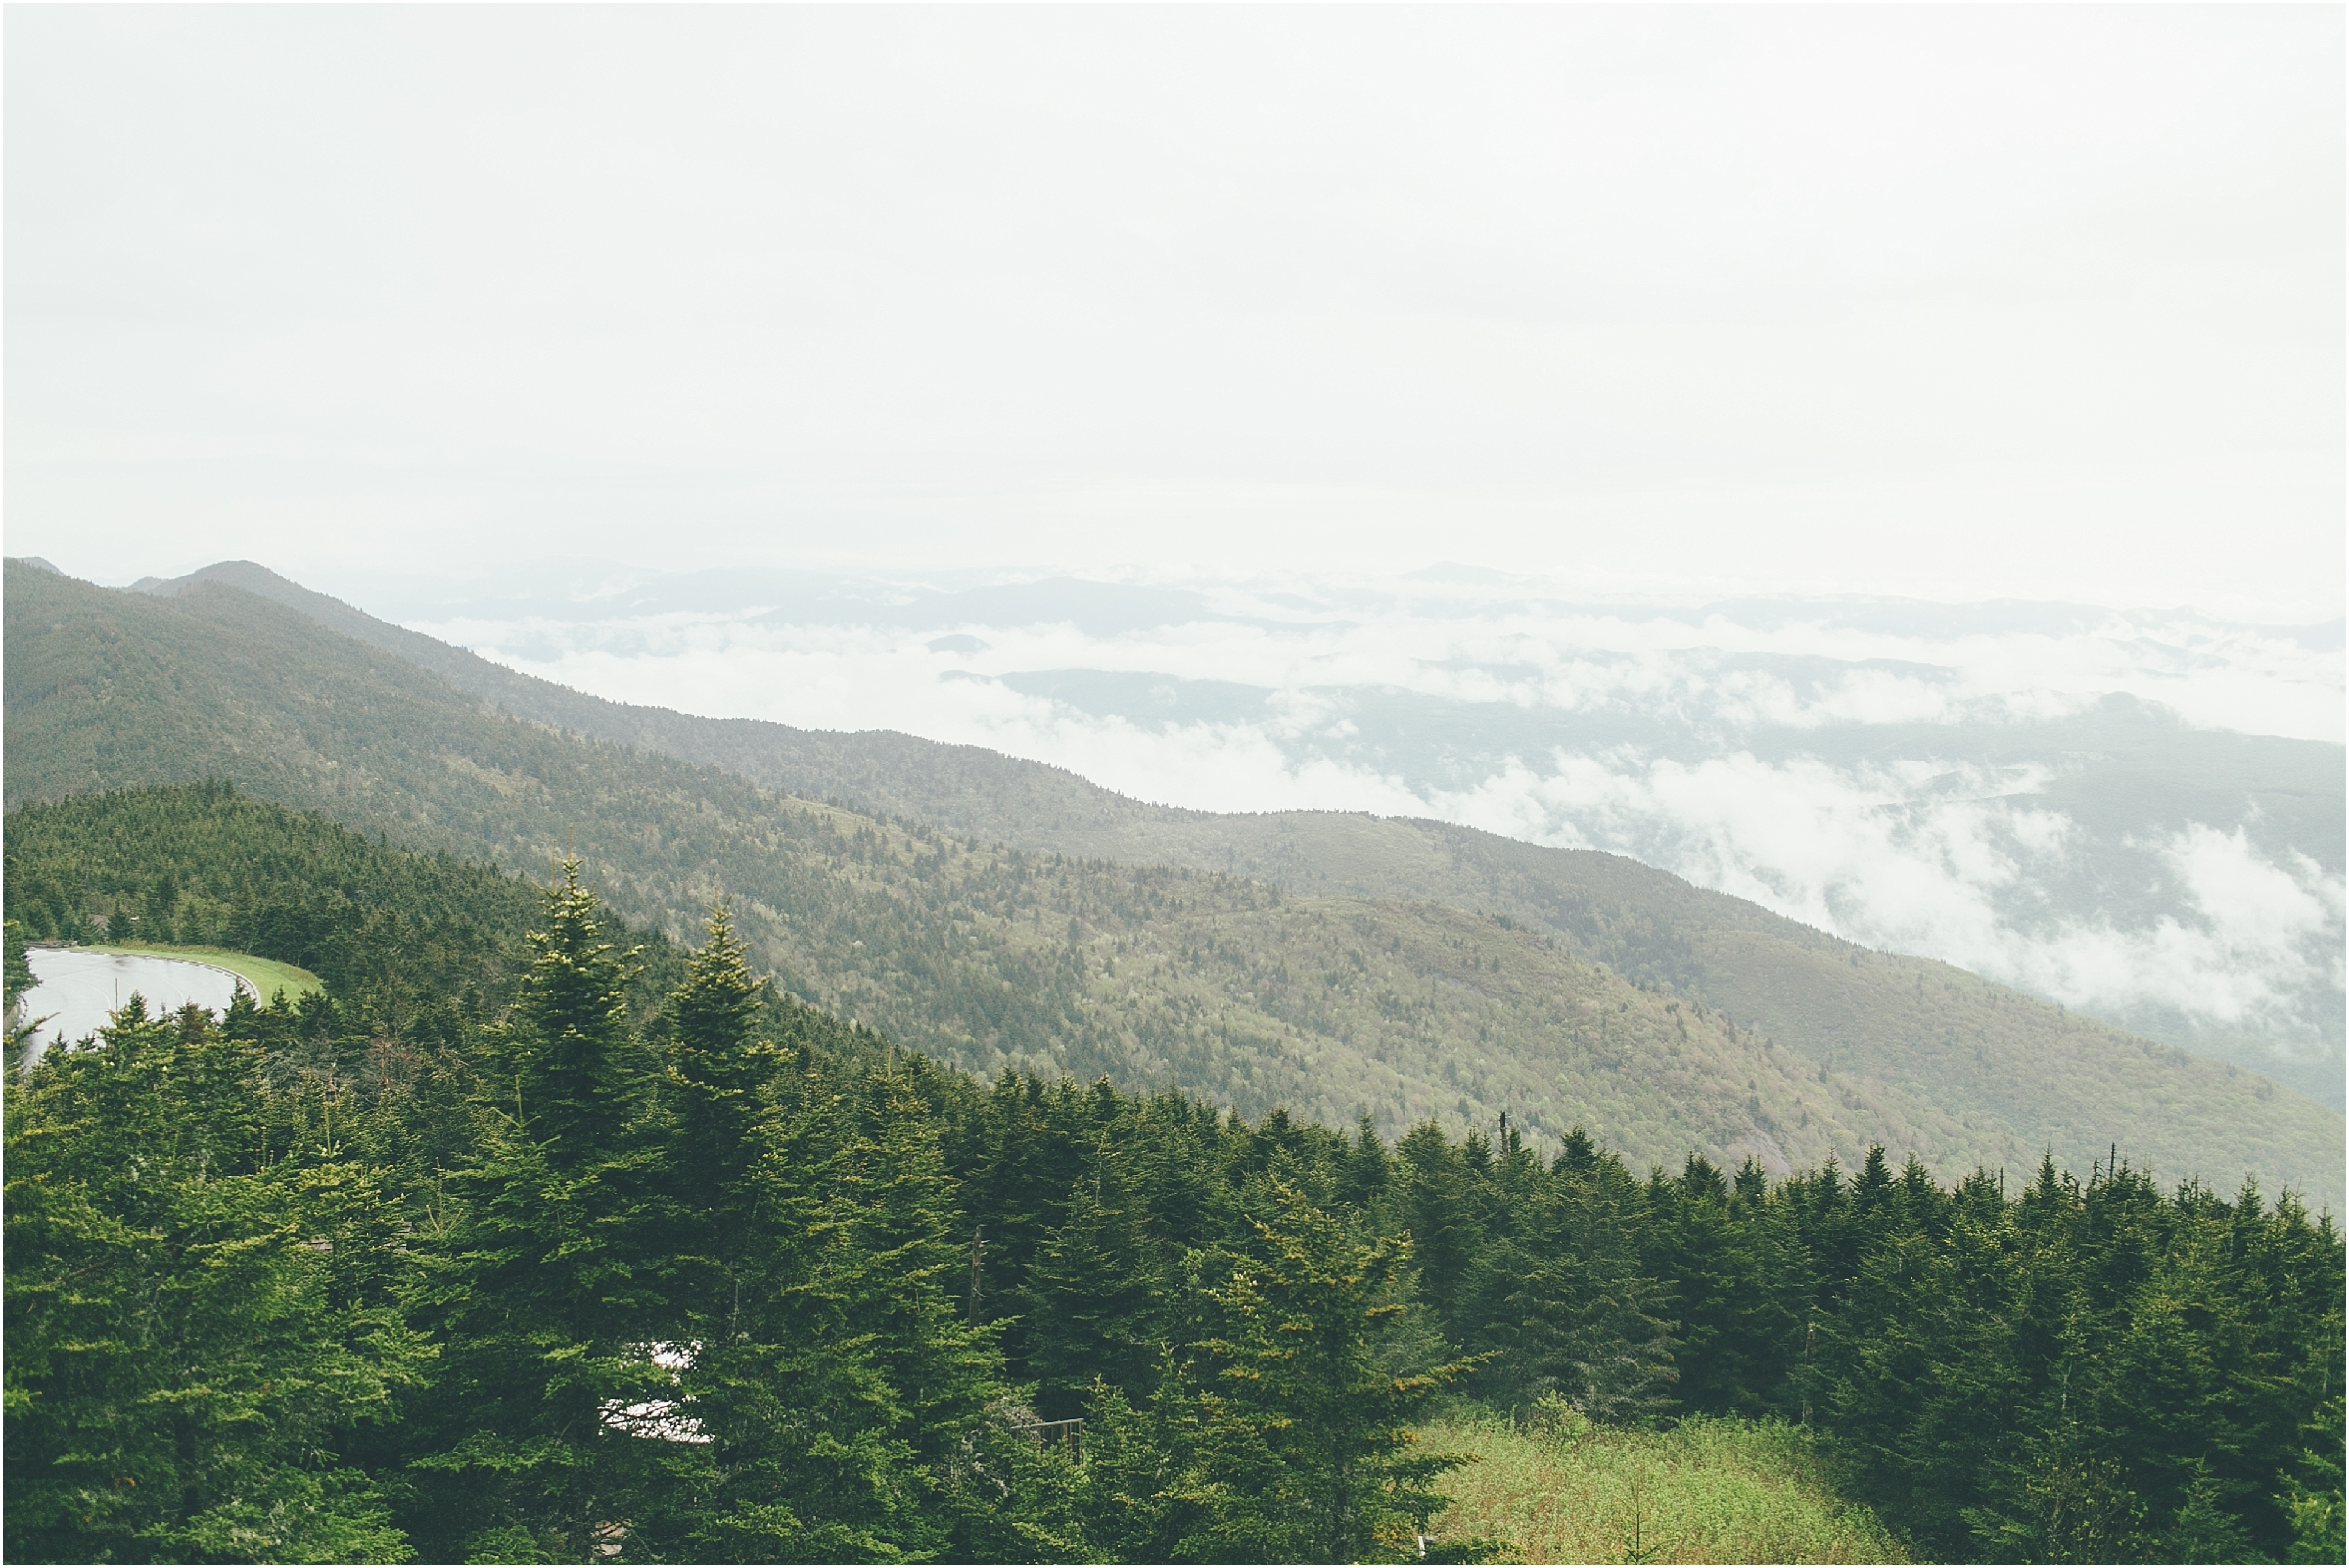 asheville north carolina honeymoon wedding photographer mount mitchell state park highest peak east of the Mississippi river